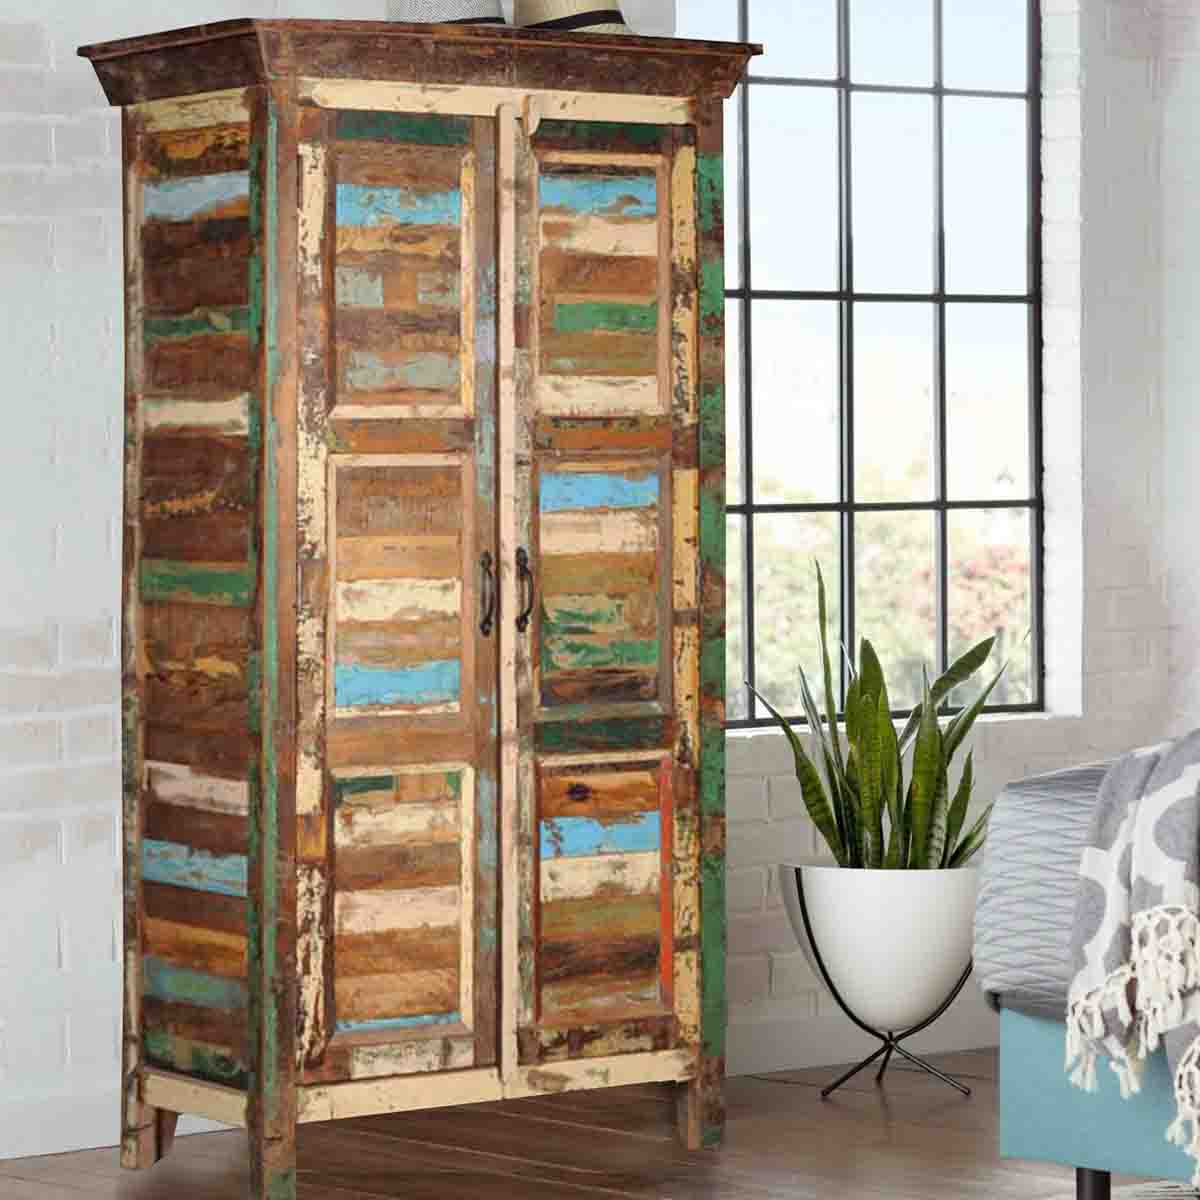 High Quality Appalachian Rustic Old Wood Patchwork Armoire Cabinet